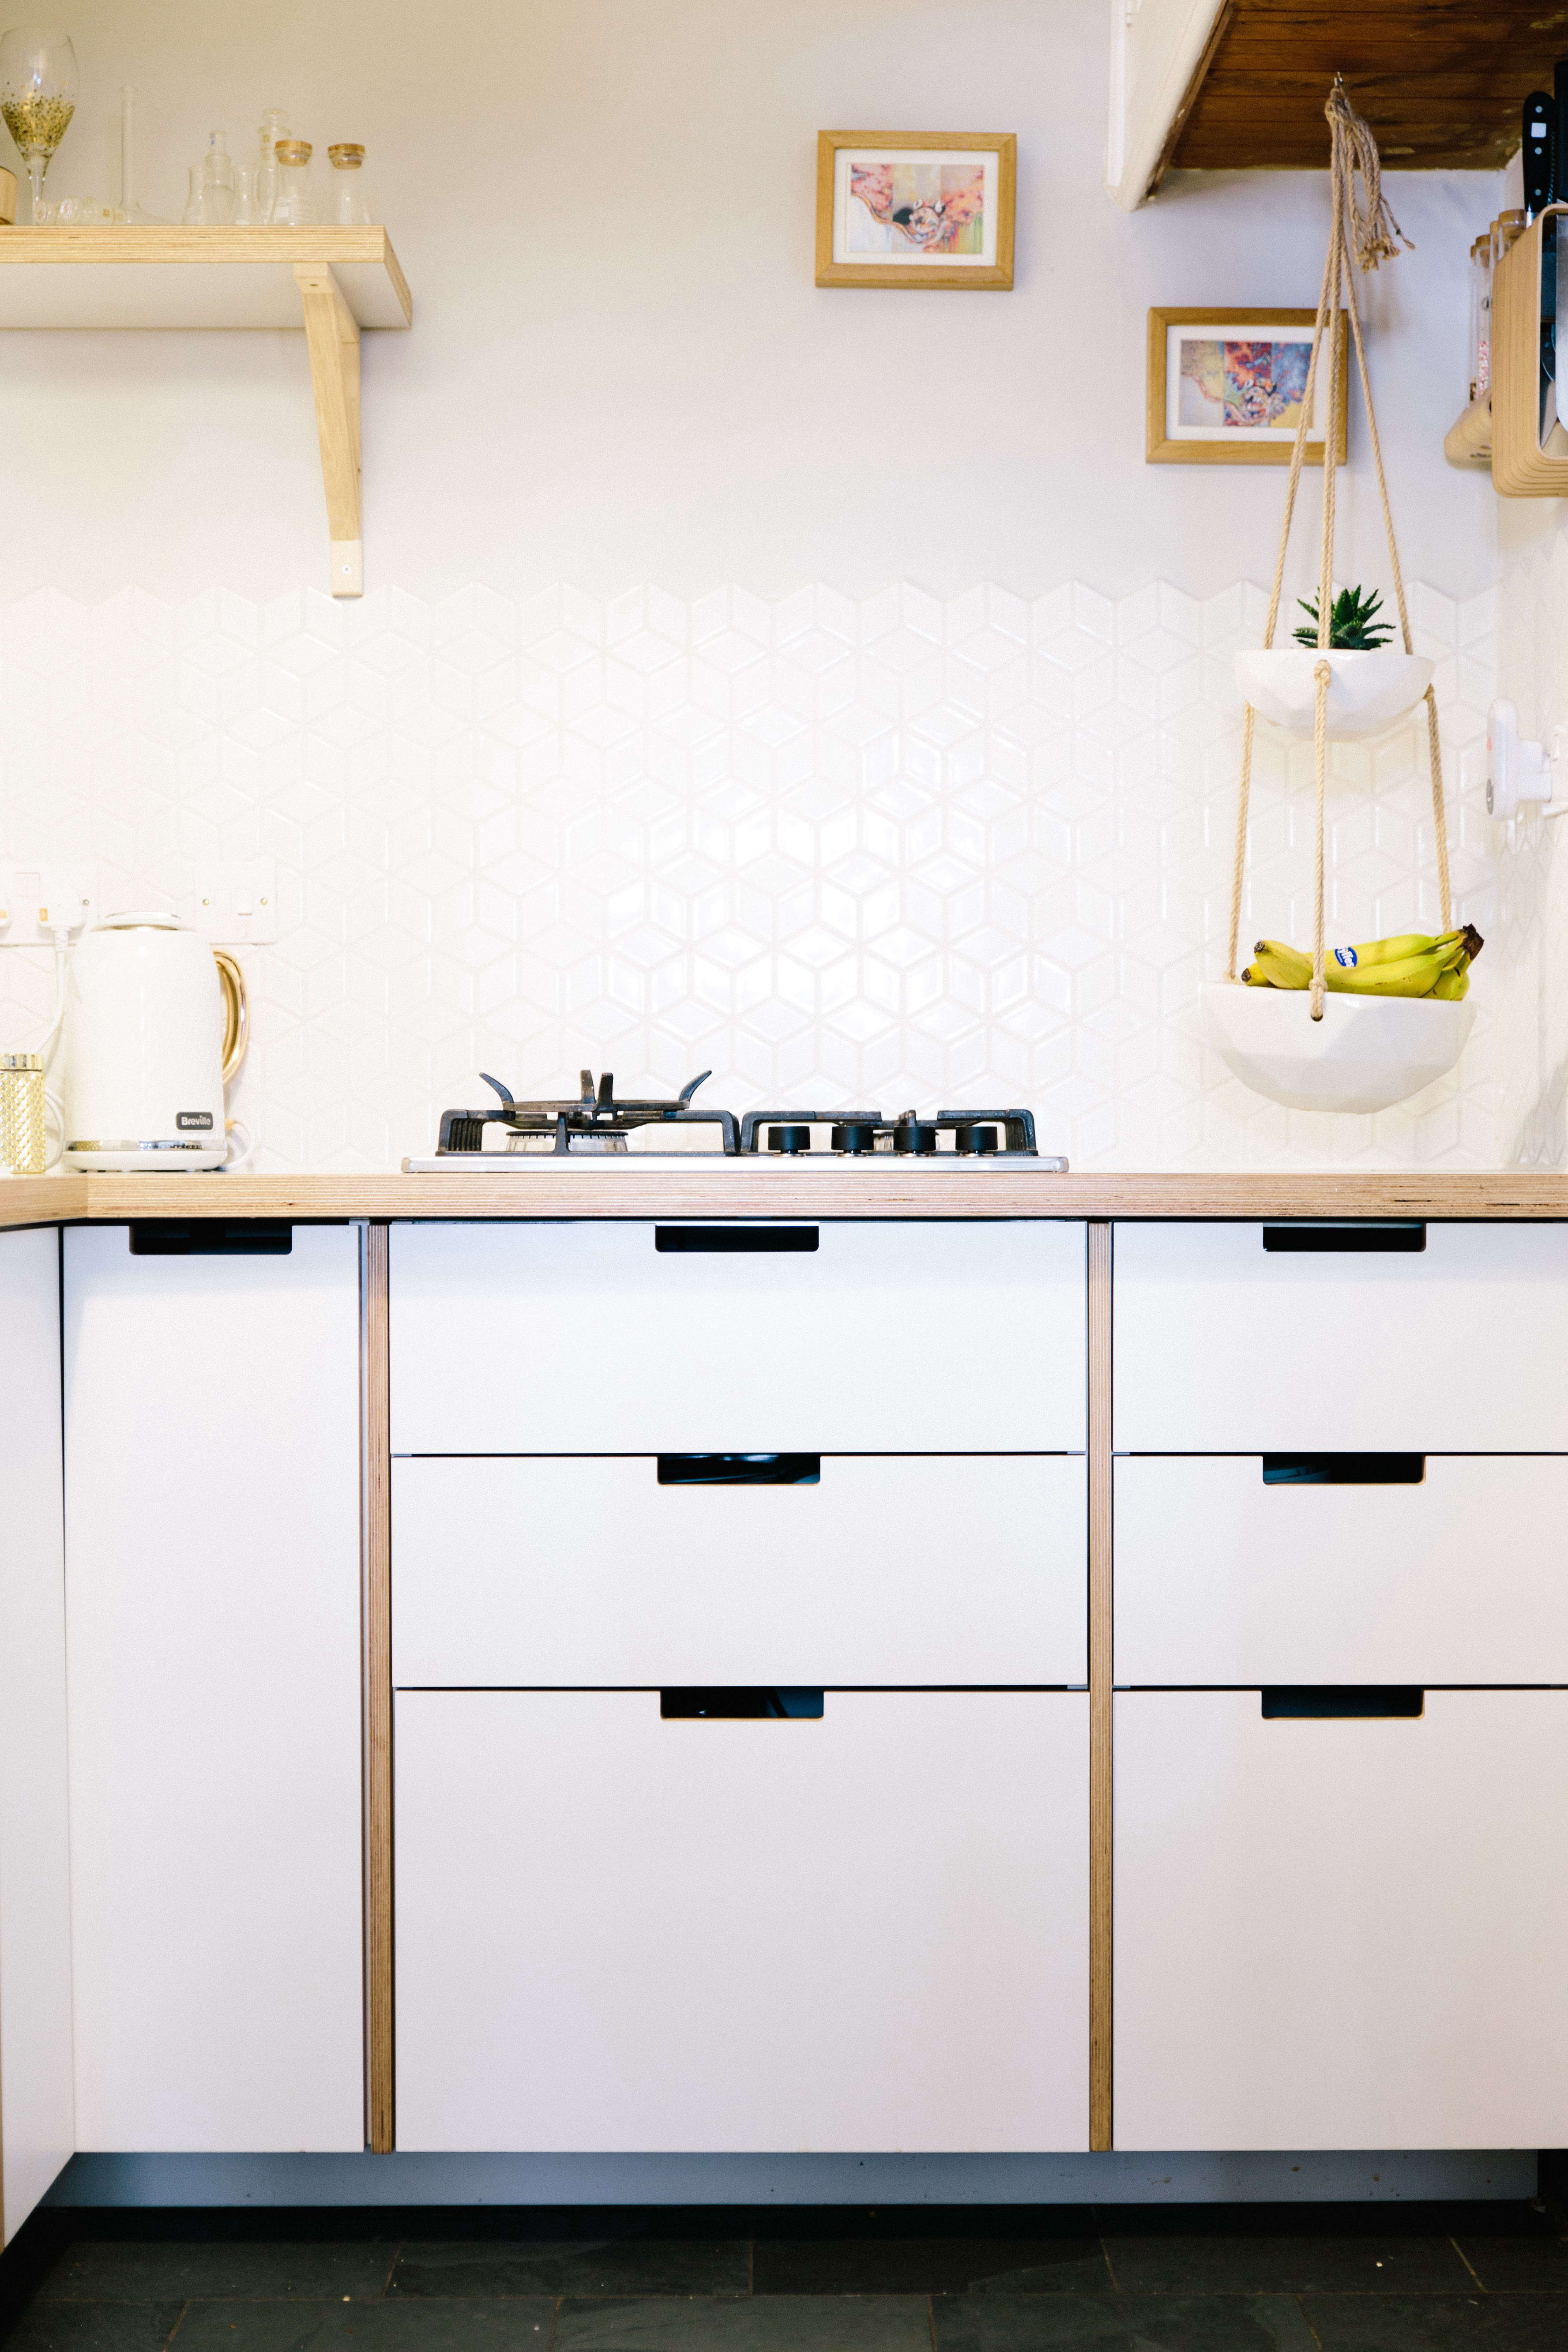 Plykea In London Stylish Plywood Cabinet Fronts And Worktops For Ikea Kitchens The Organized Home